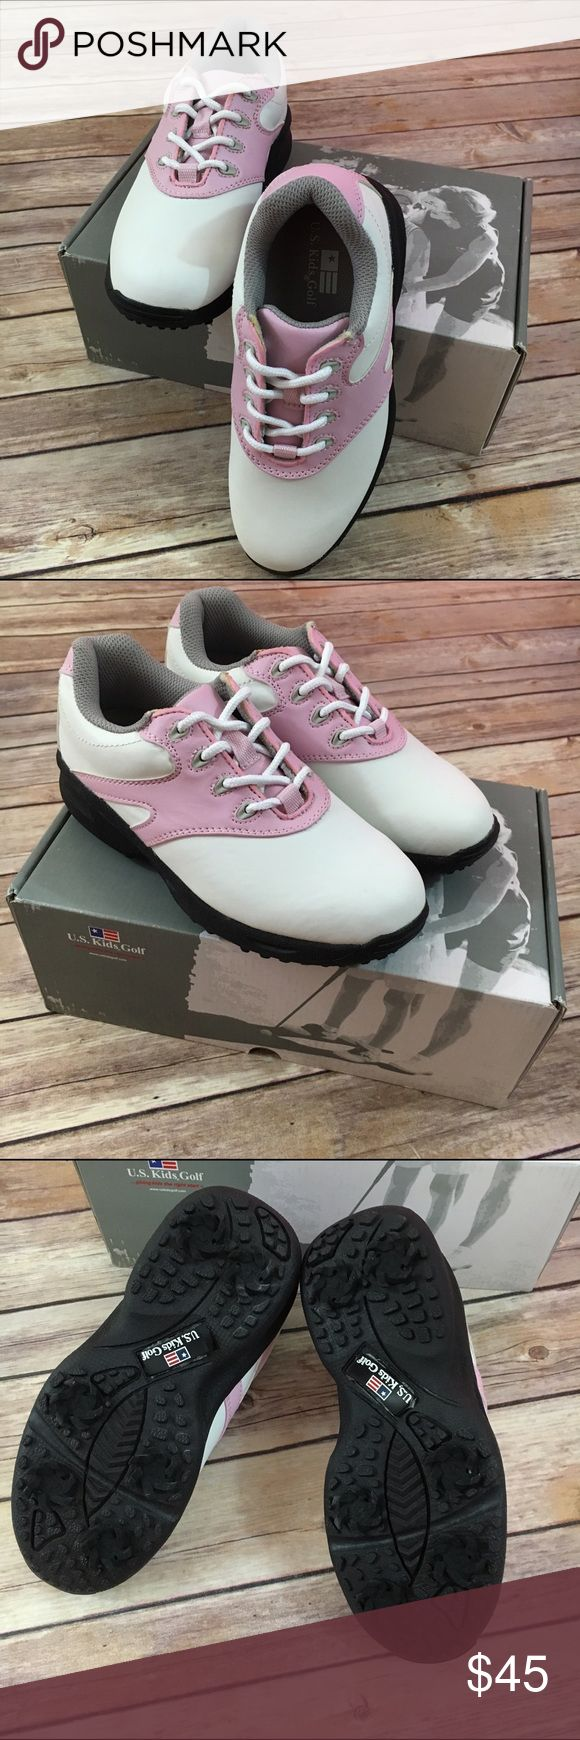 US Kids Golf Pink White Saddle Shoes 1 New New, in box is this great pair of girls US Kids Golf Swing-Right golf shoes.  Saddle style and so cute.  Great for your aspiring golfer!  #uskidsgolf #golf #golfpro #golfshoes #pinkandwhite #saddleshoes #new #nwt US Kids Golf Shoes